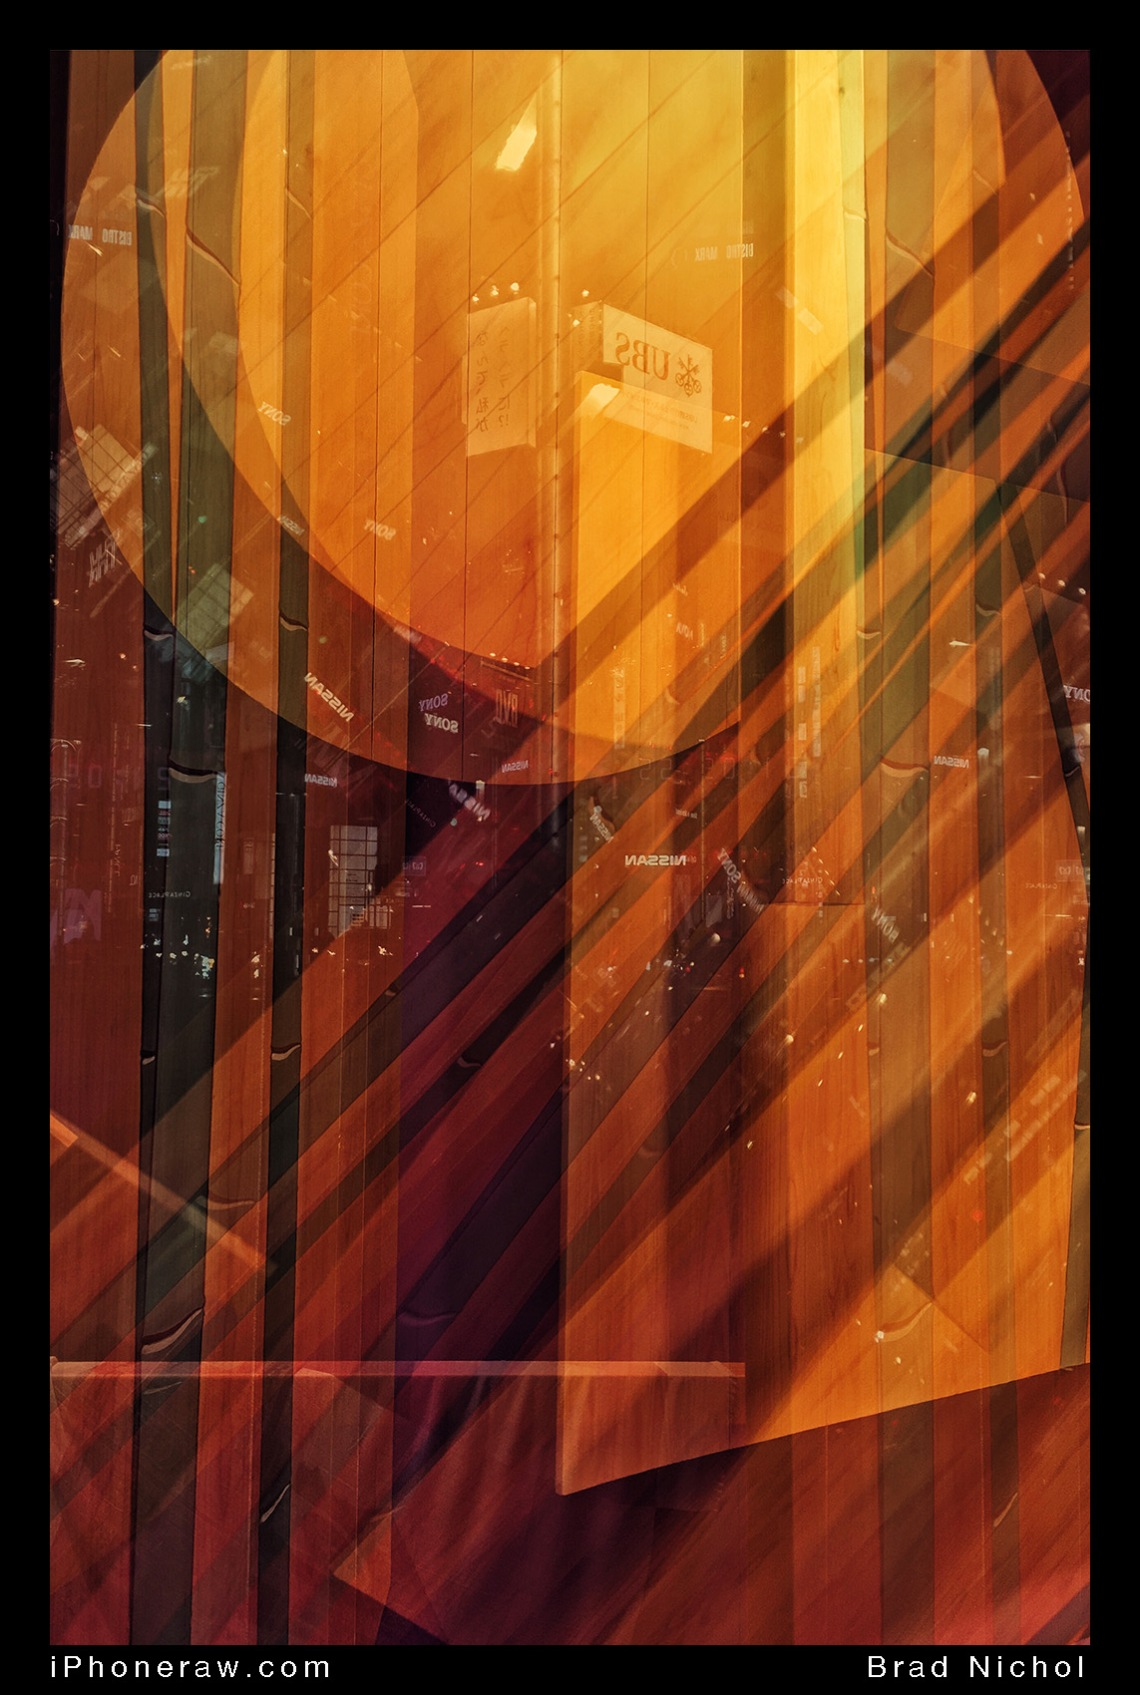 Abstract art, window display, orange tones, Ginza Tokyo, Japan